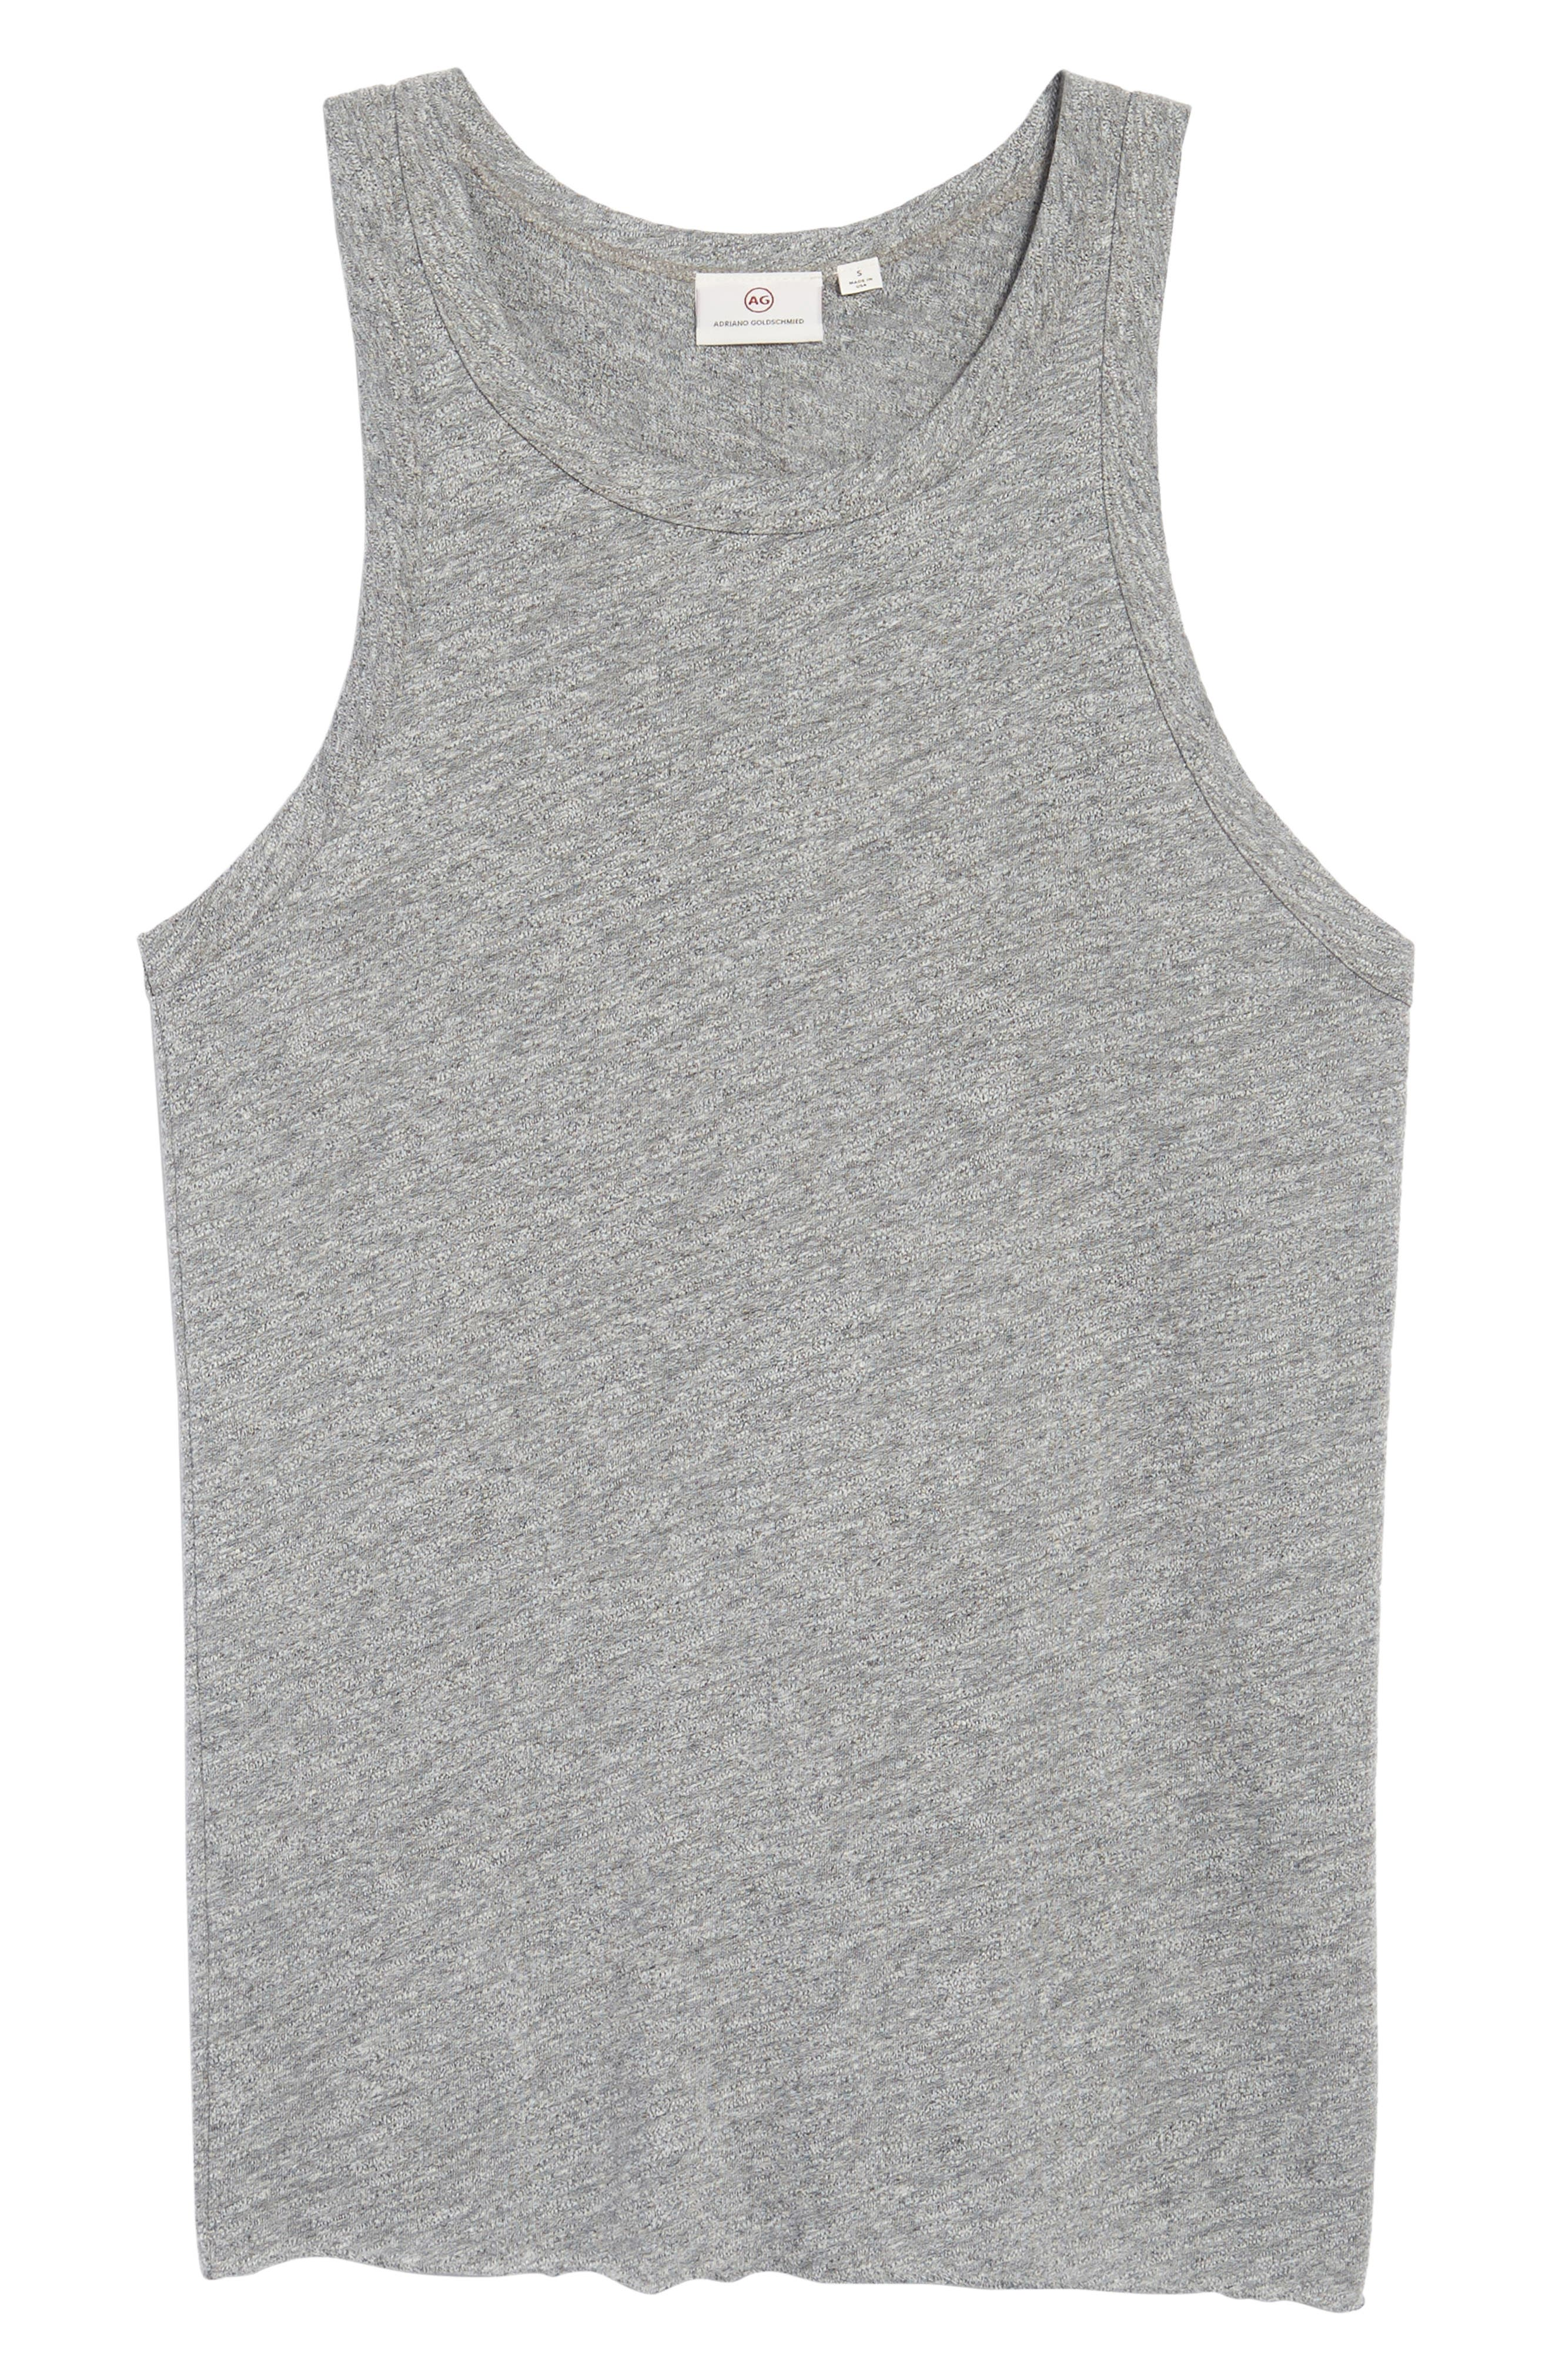 Lexi Tank,                             Alternate thumbnail 6, color,                             Speckled Heather Grey